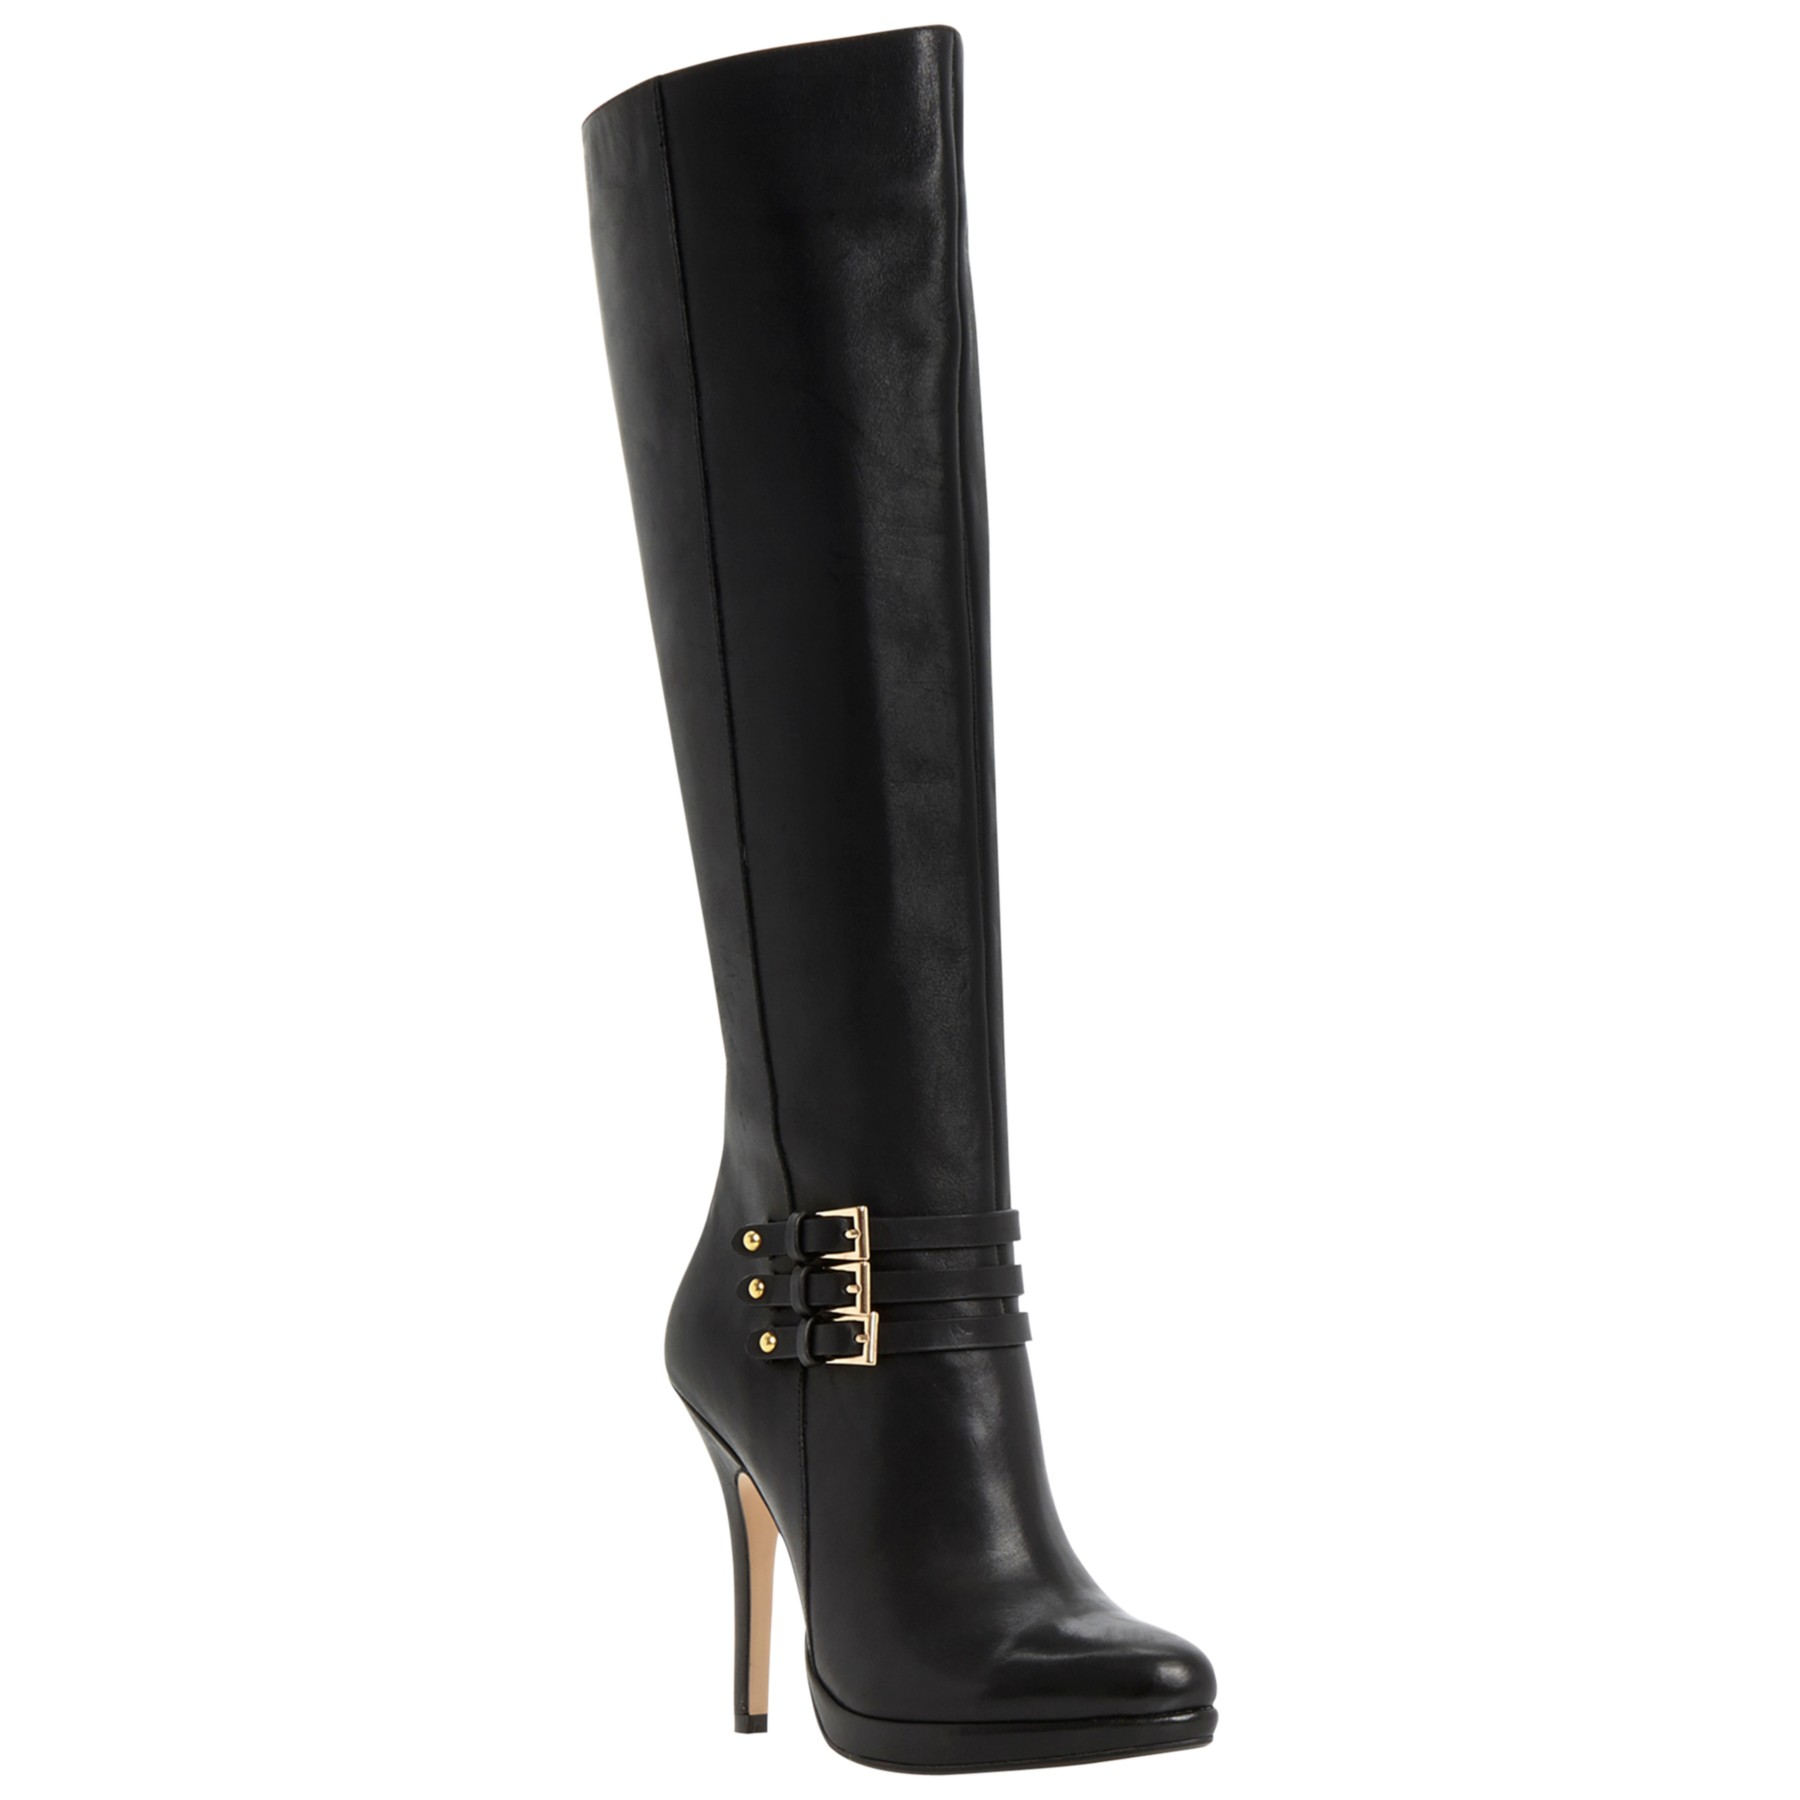 dune sorenity stiletto heel buckle knee high boots in